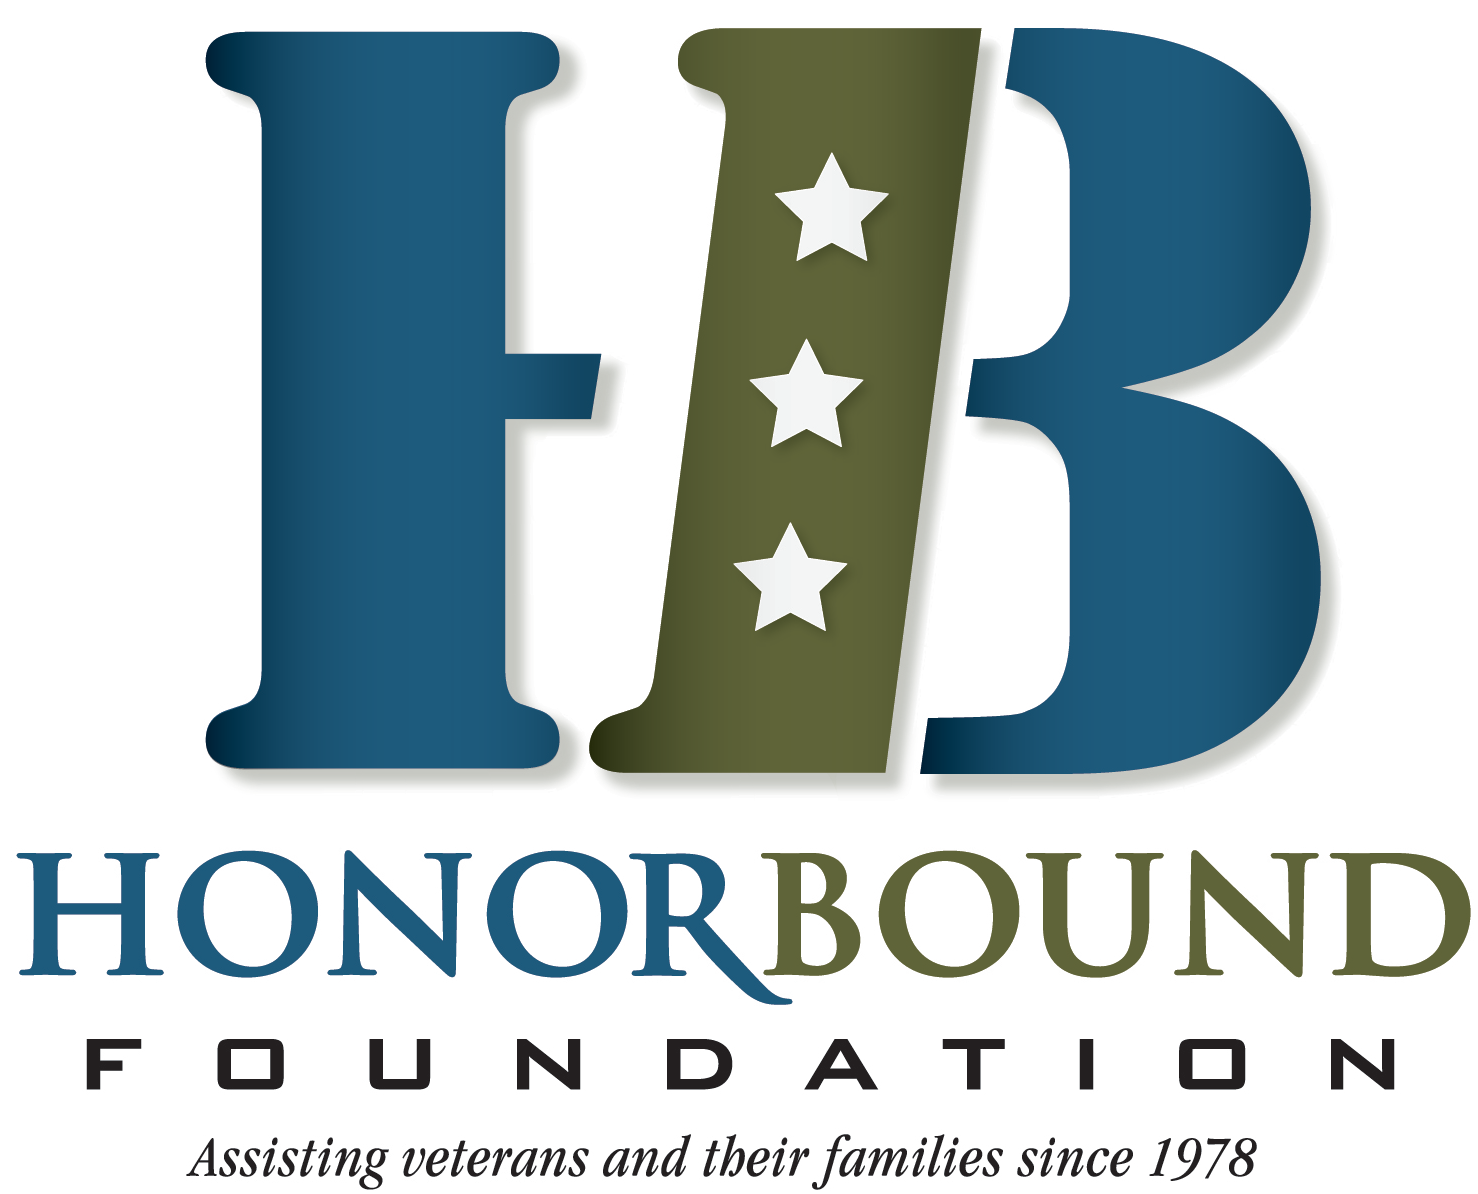 New Hampshire Car Donations - HonorBound Foundation - DonatecarUSA.com